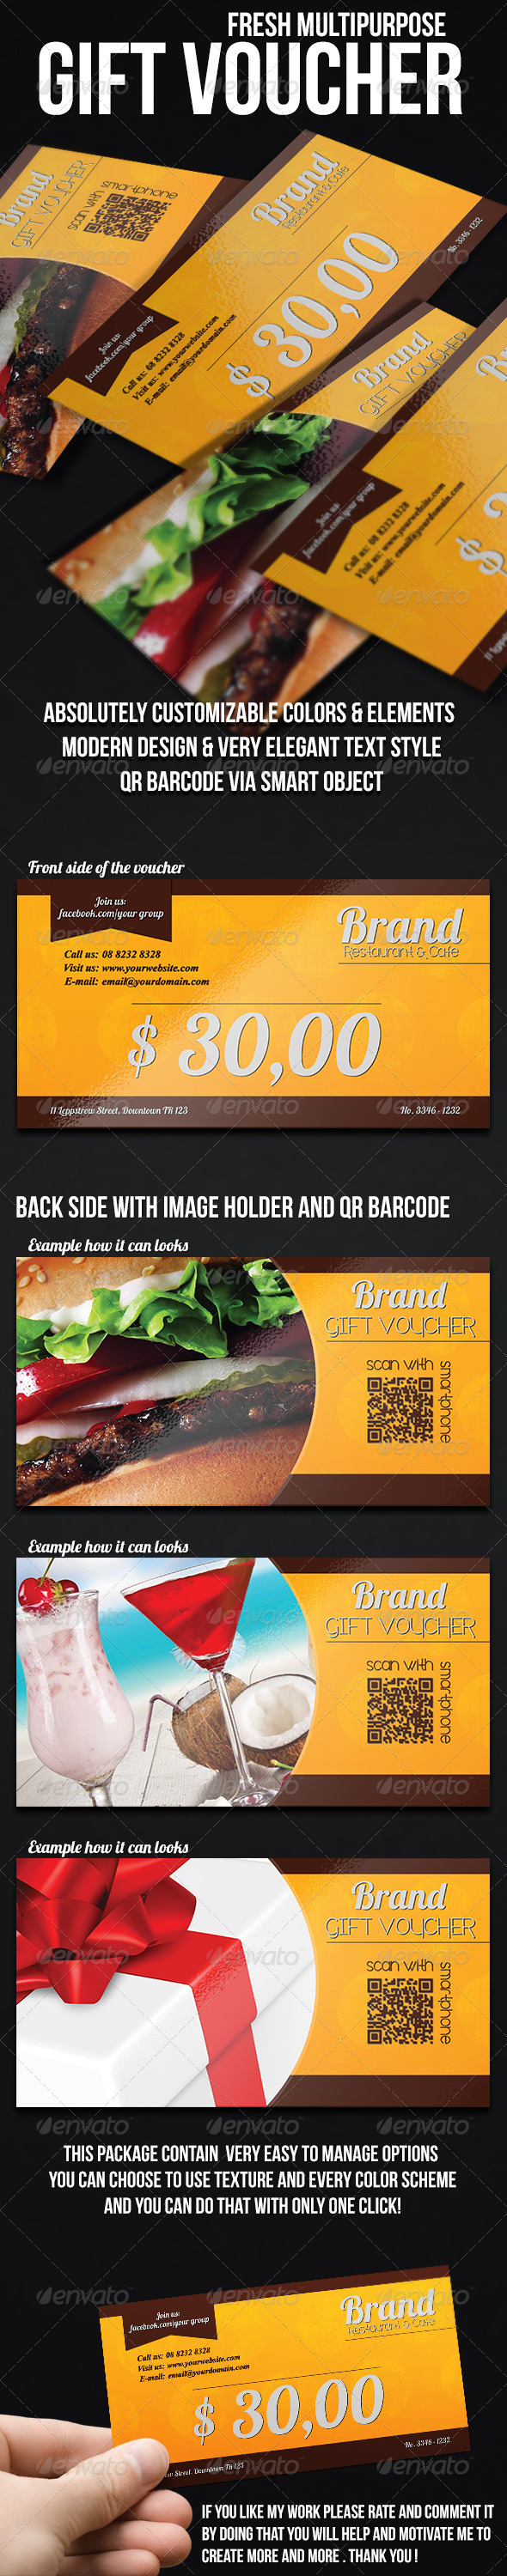 GraphicRiver Fresh multipurpose gift voucher 7715012